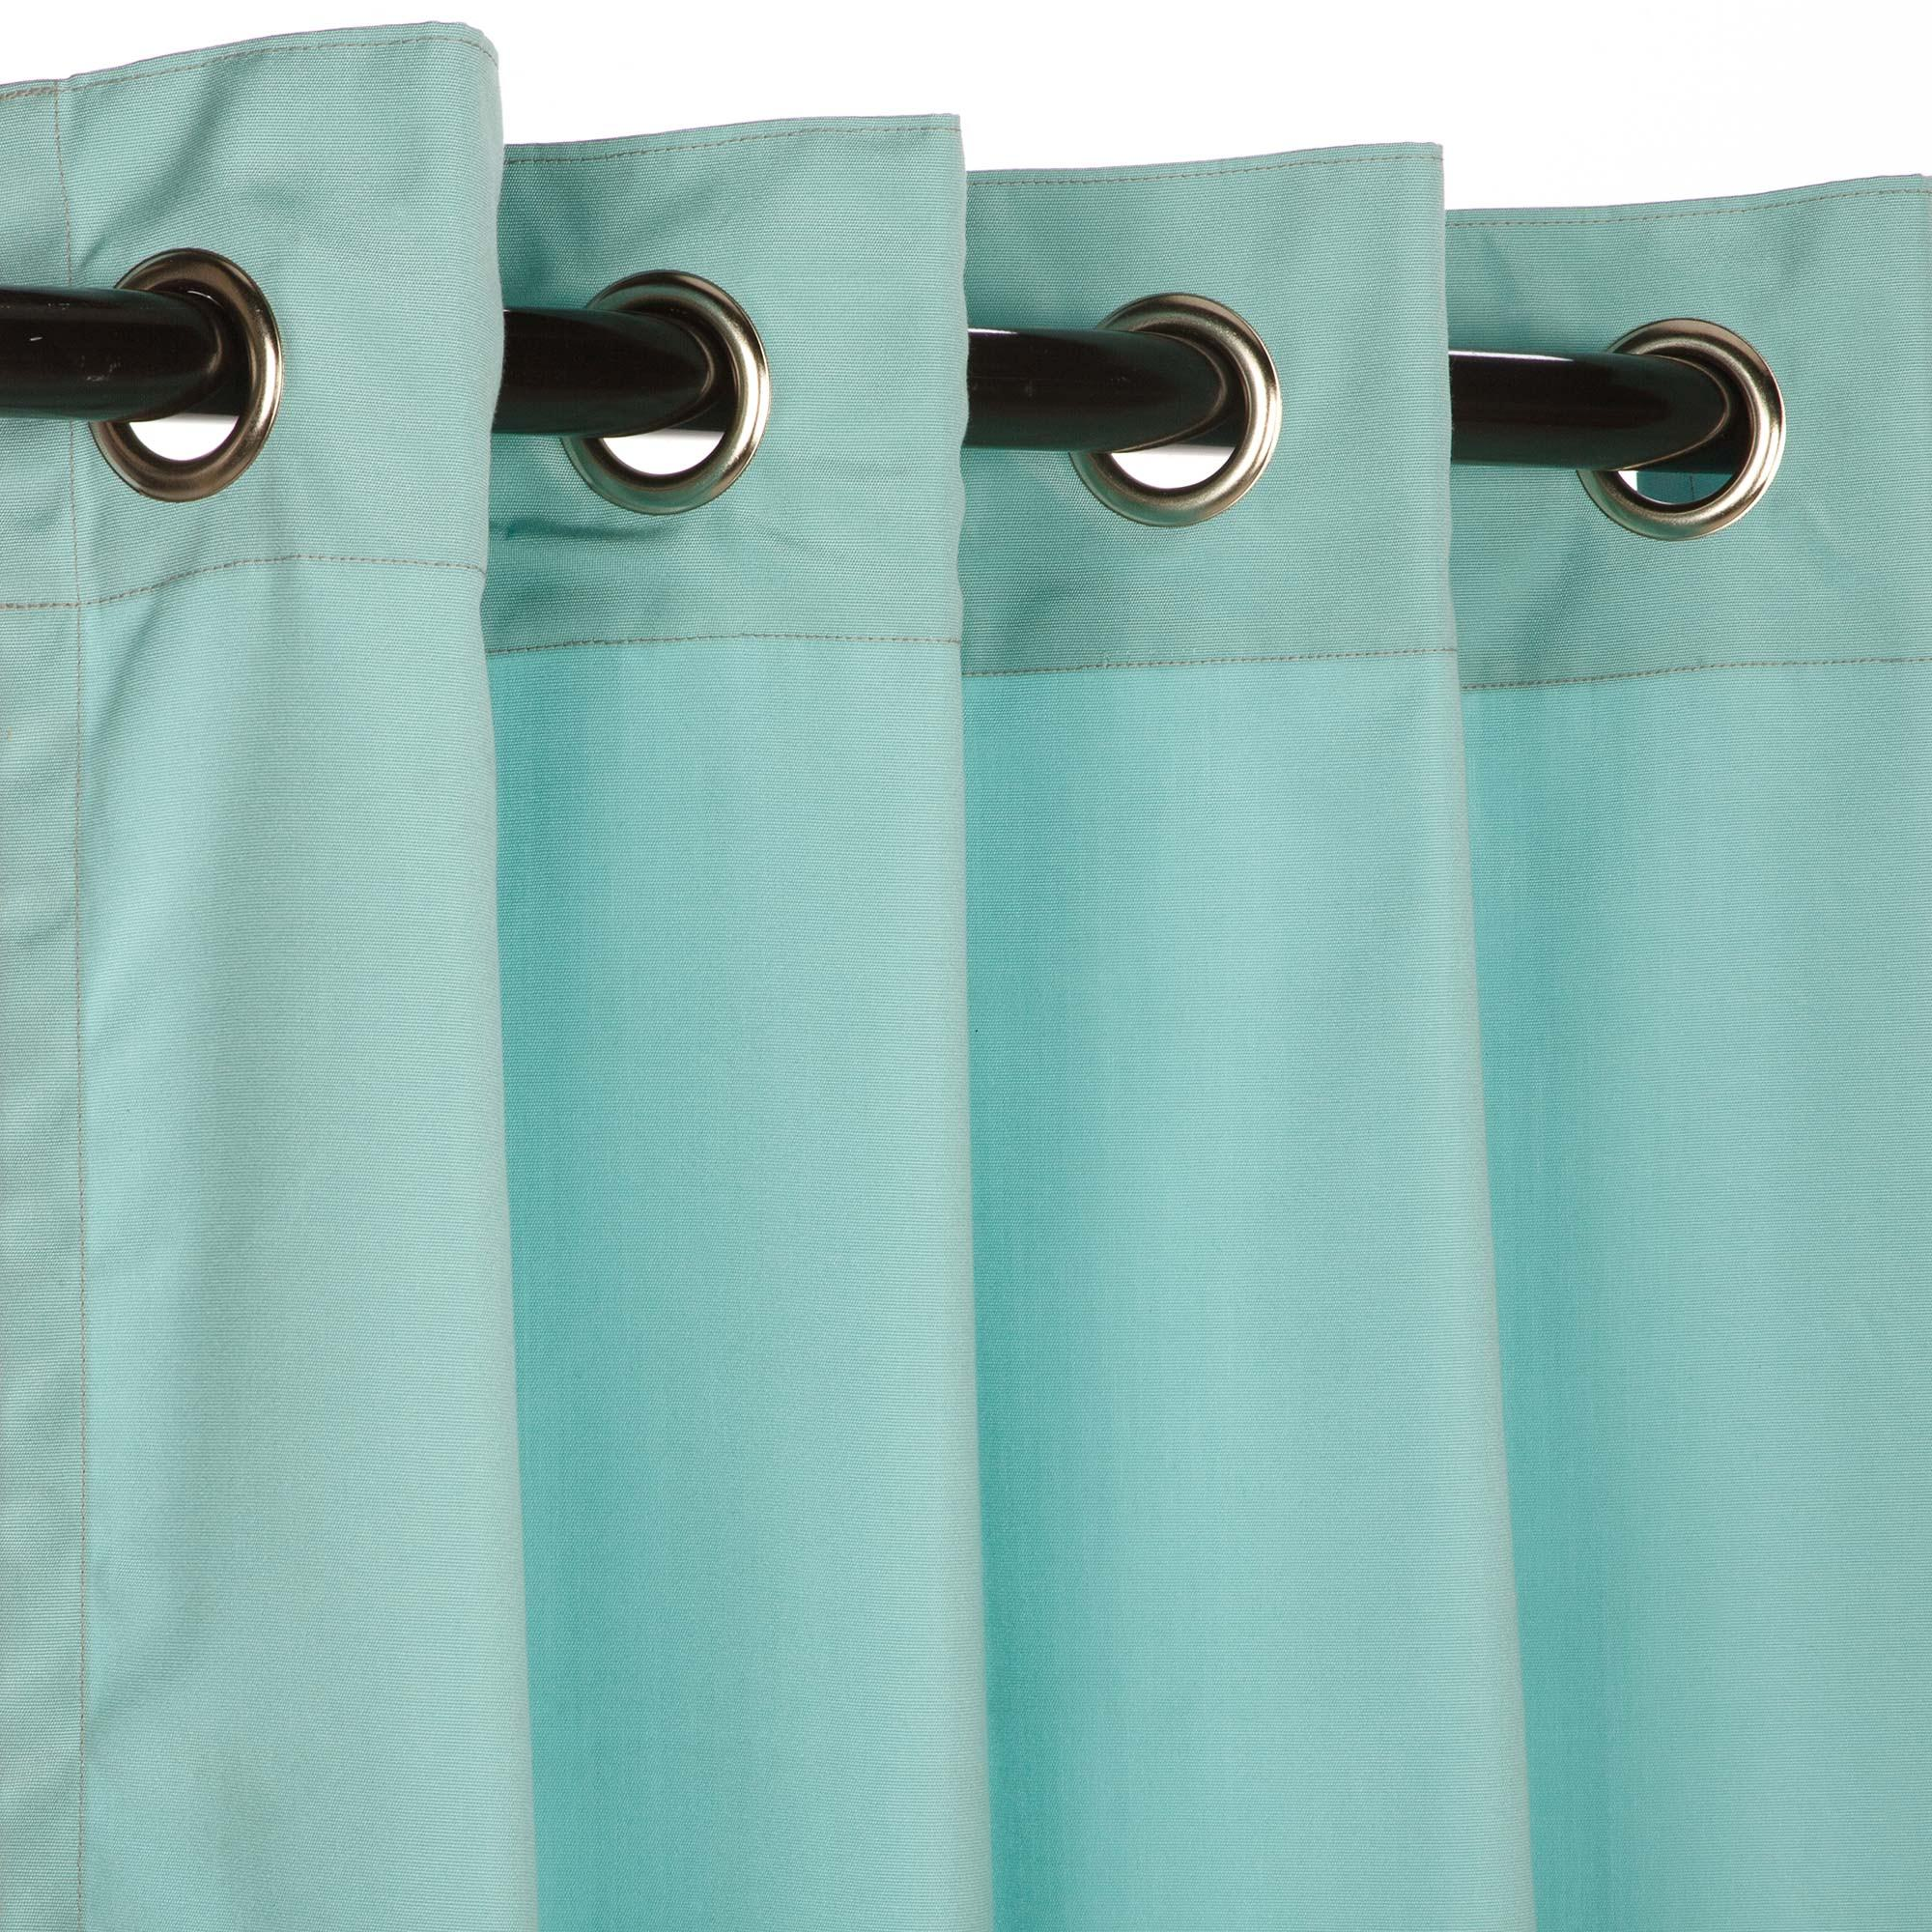 Sunbrella Outdoor Curtain With Nickel Grommets - Canvas Glacier by Essentials by DFO